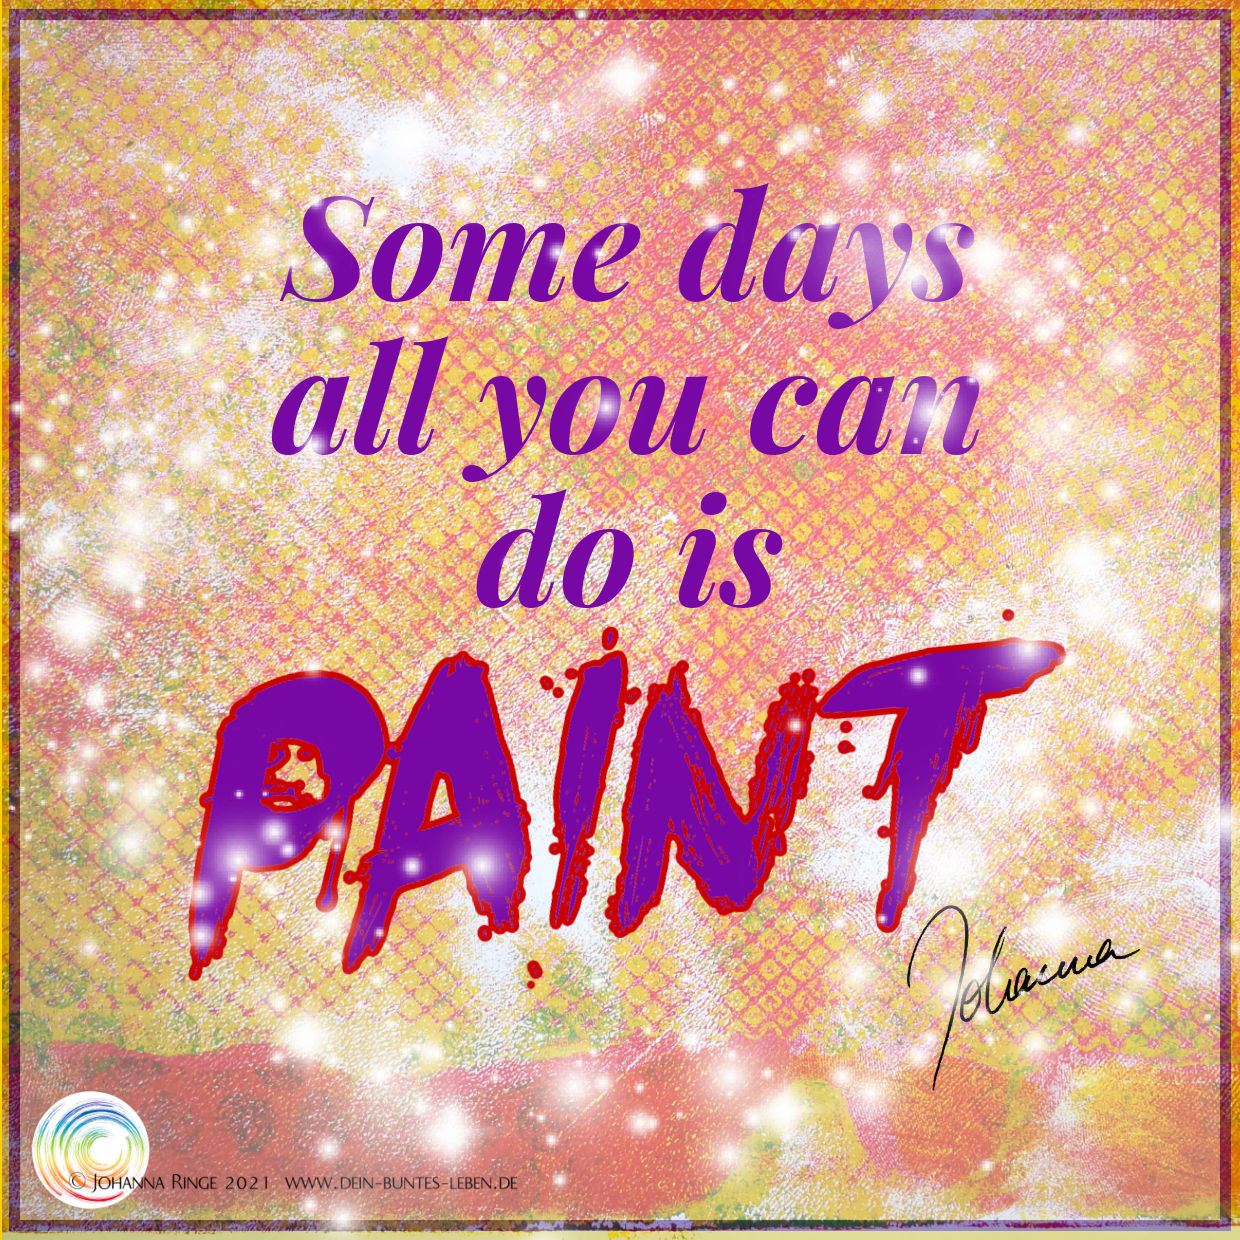 Some days all you can do is paint. ©Johanna Ringe 2021 www.johannaringe.com